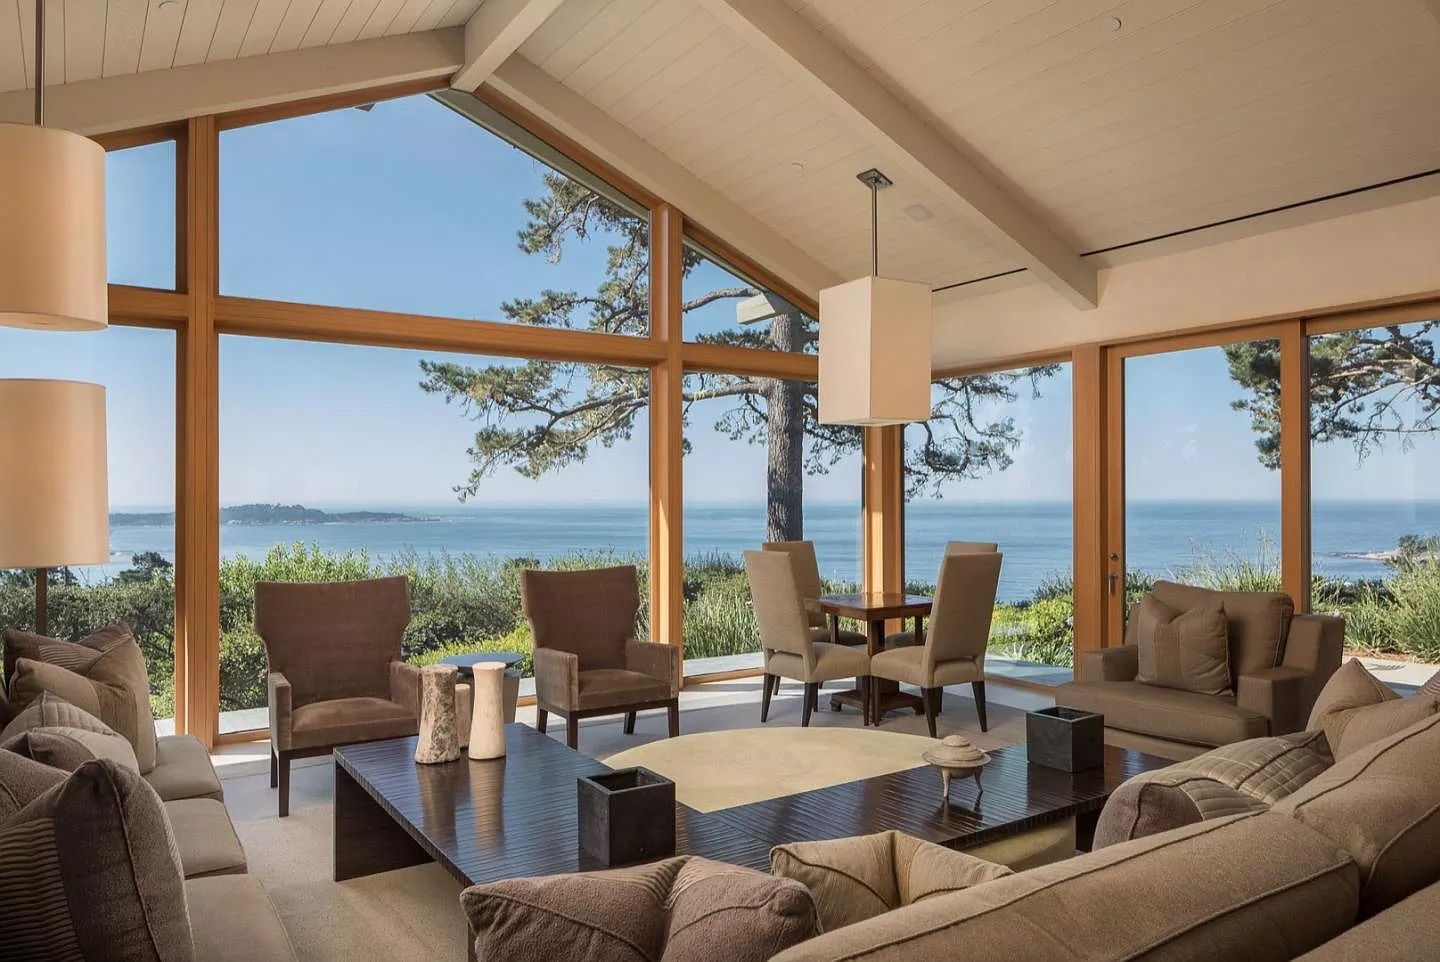 Pebble Beach, CA 93953 - $24,950,00 home for sale, house images, photos and pics gallery